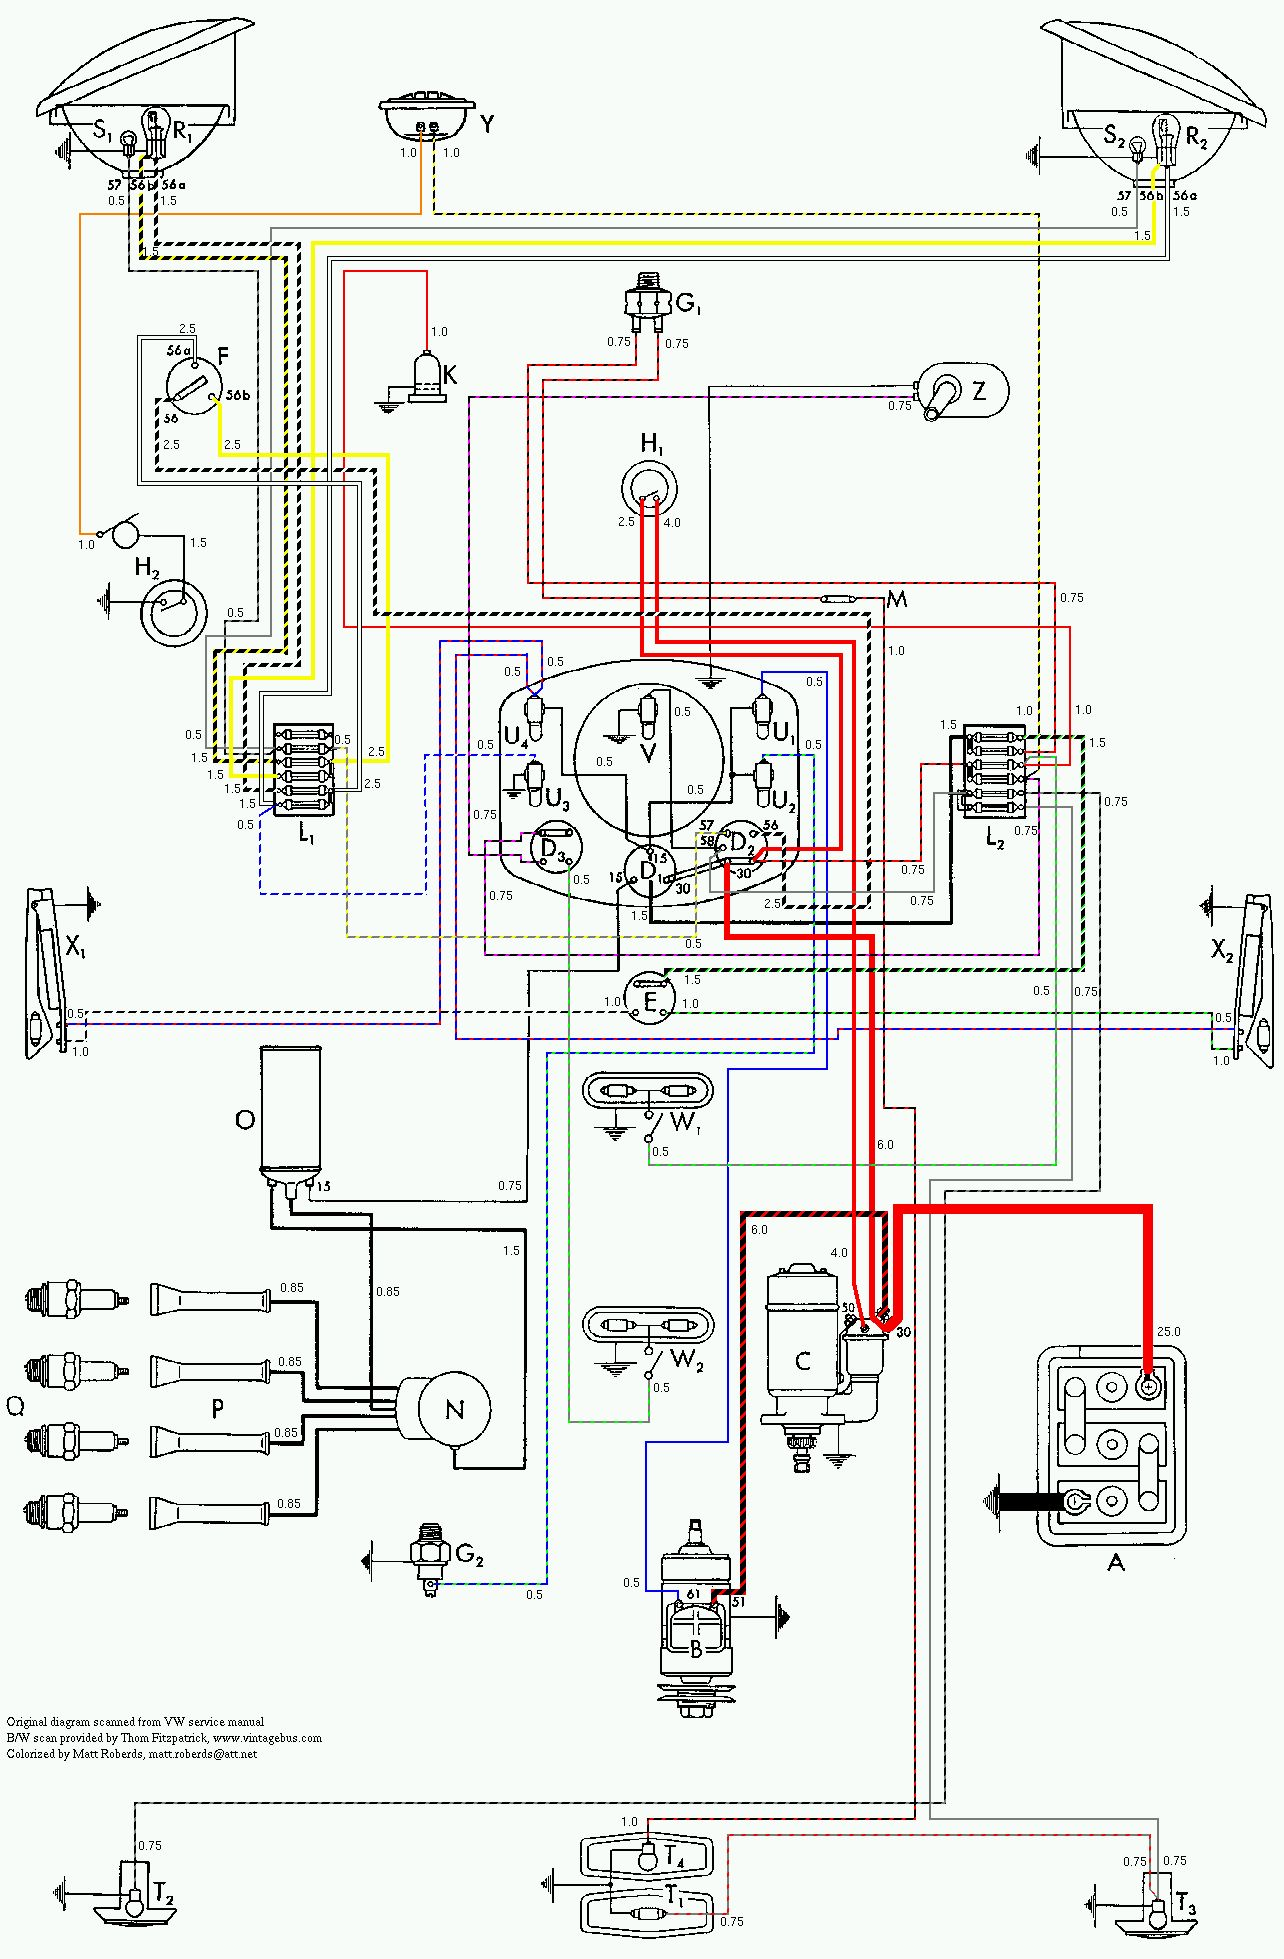 bus 53 color vintagebus com vw bus (and other) wiring diagrams Volkswagen Type 2 Wiring Harness at gsmx.co